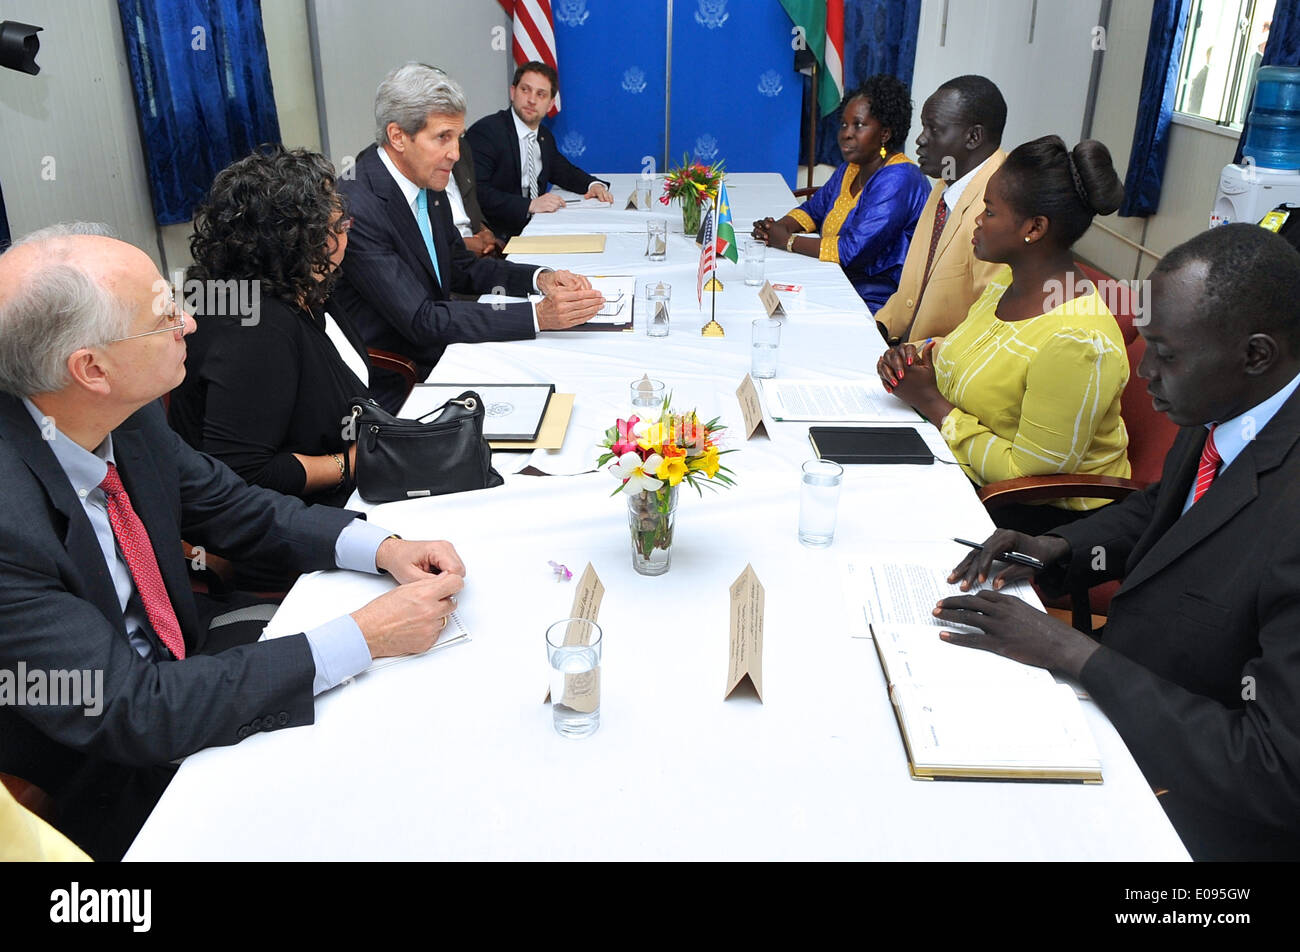 Secretary Kerry Meets With Members of South Sudanese Civil Society - Stock Image